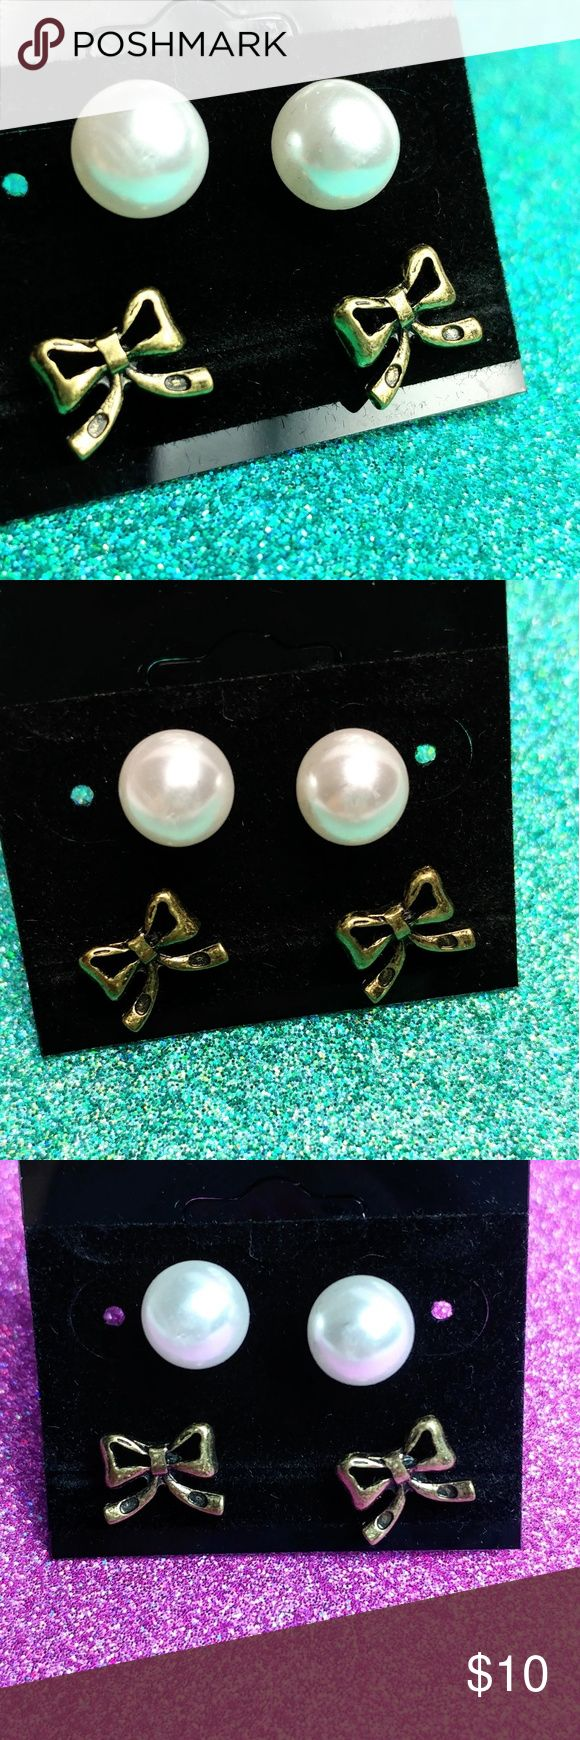 Sensitive Ears Bow And Pearl Stud Earrings